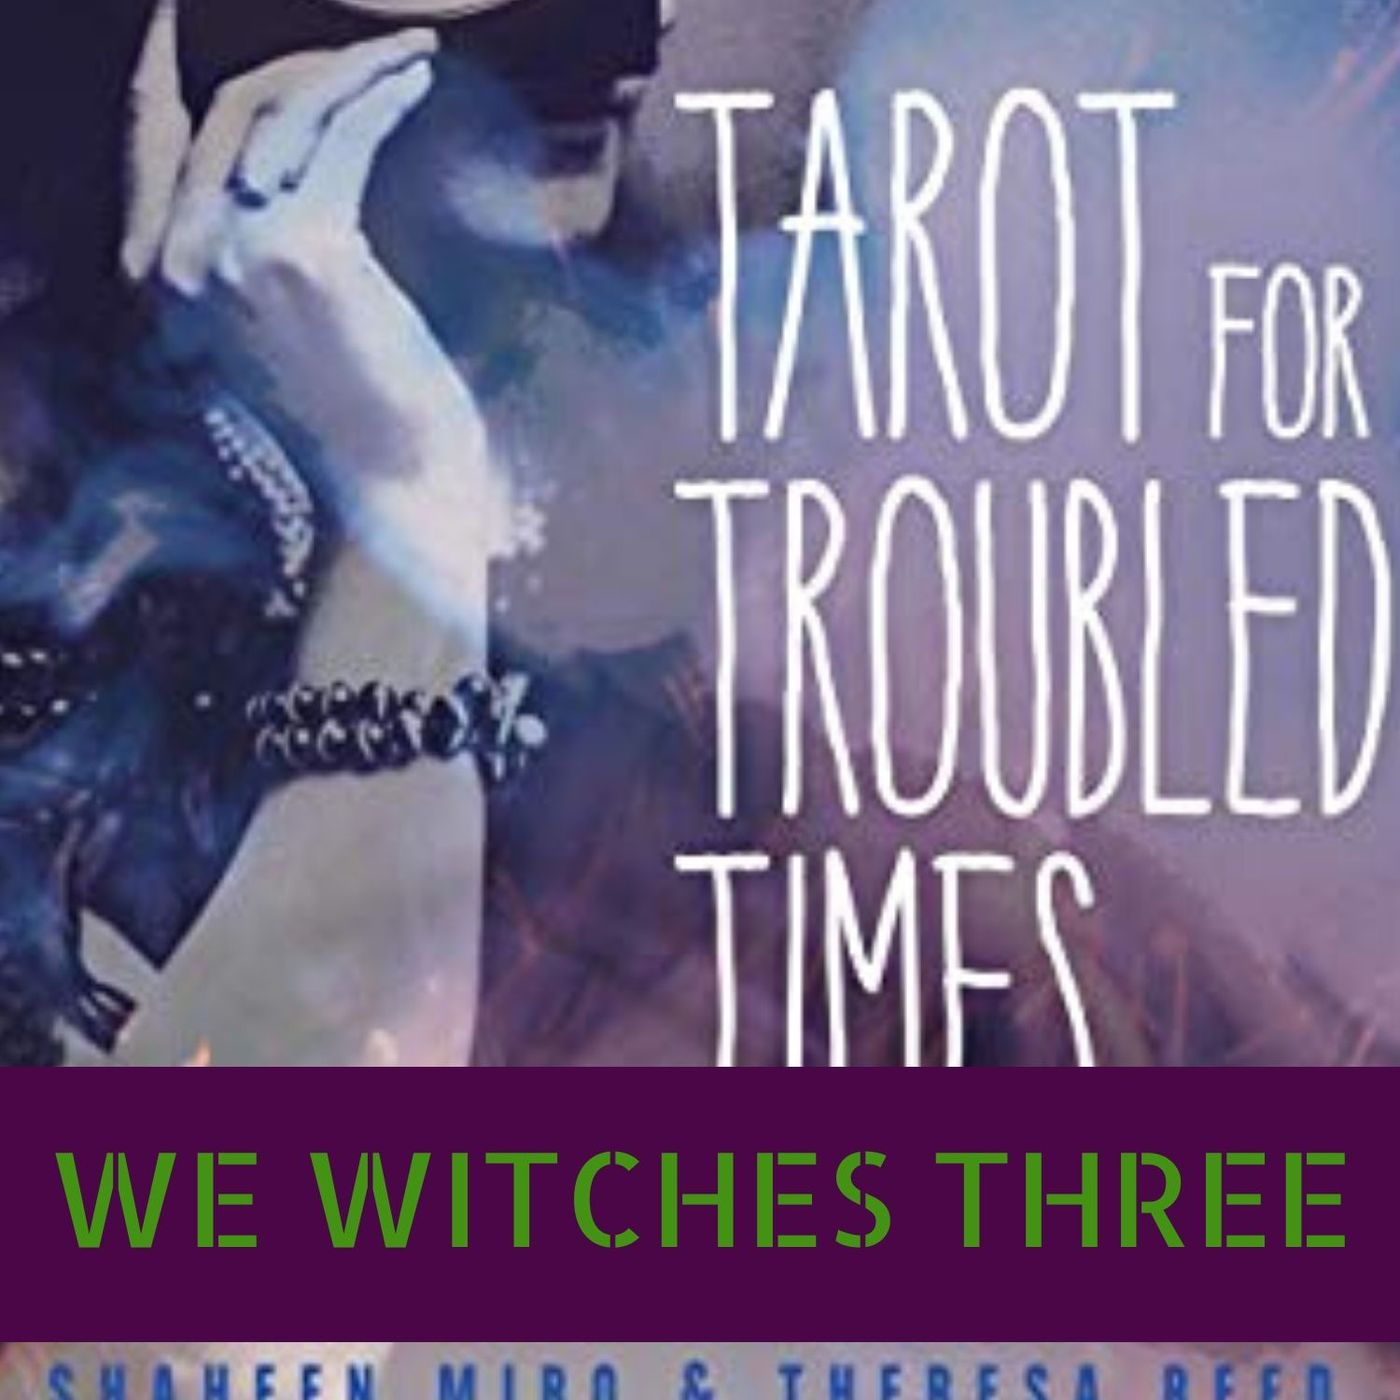 🃏 Theresa Reed and Shaheen Miro - Tarot for Troubled Times 🔮